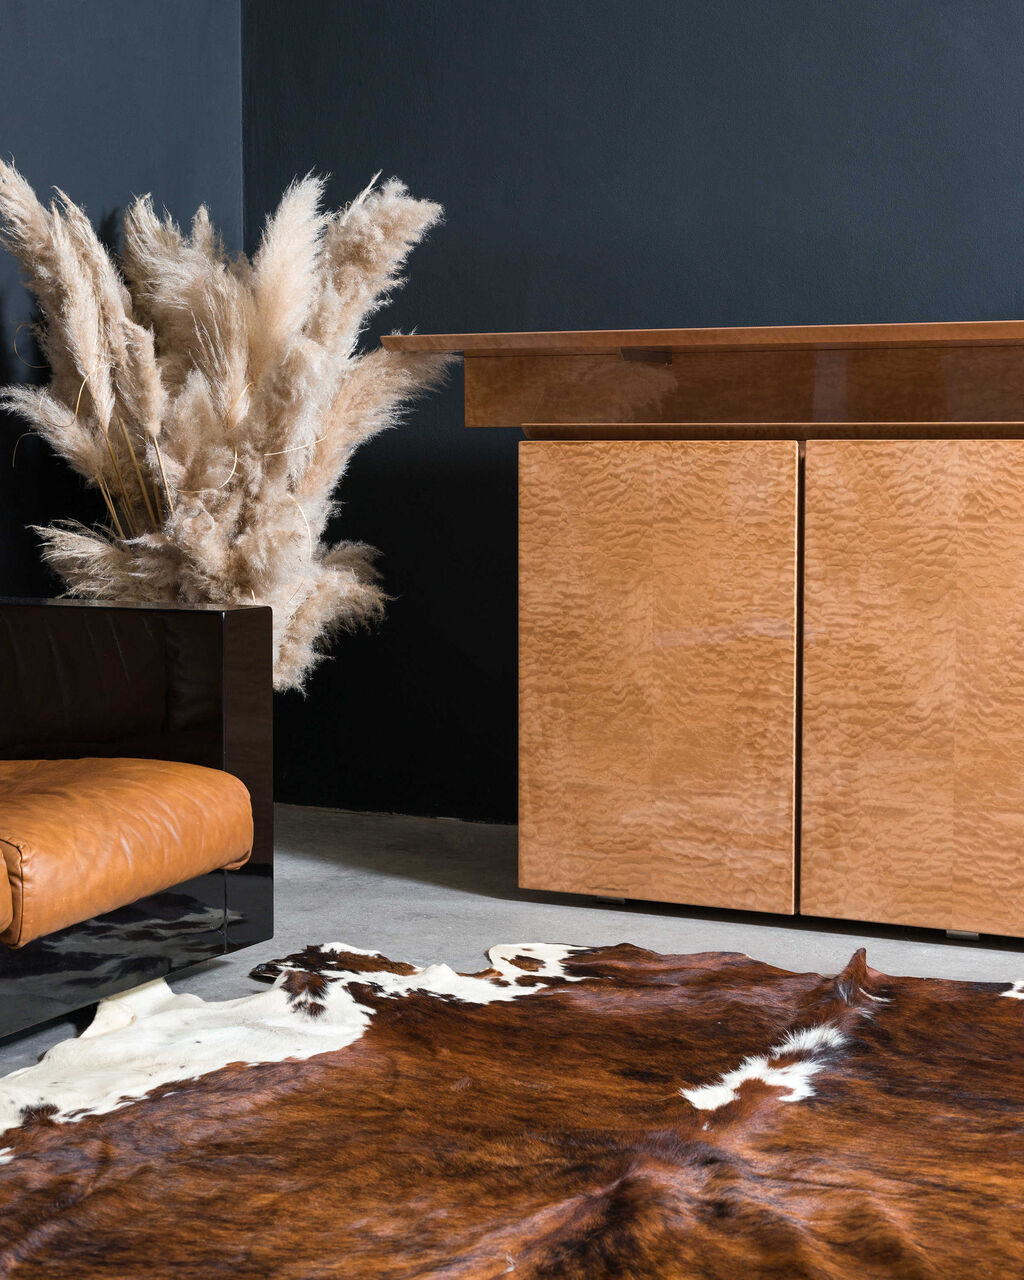 Sideboard by GOffredi for Saporiti in birds eye maple